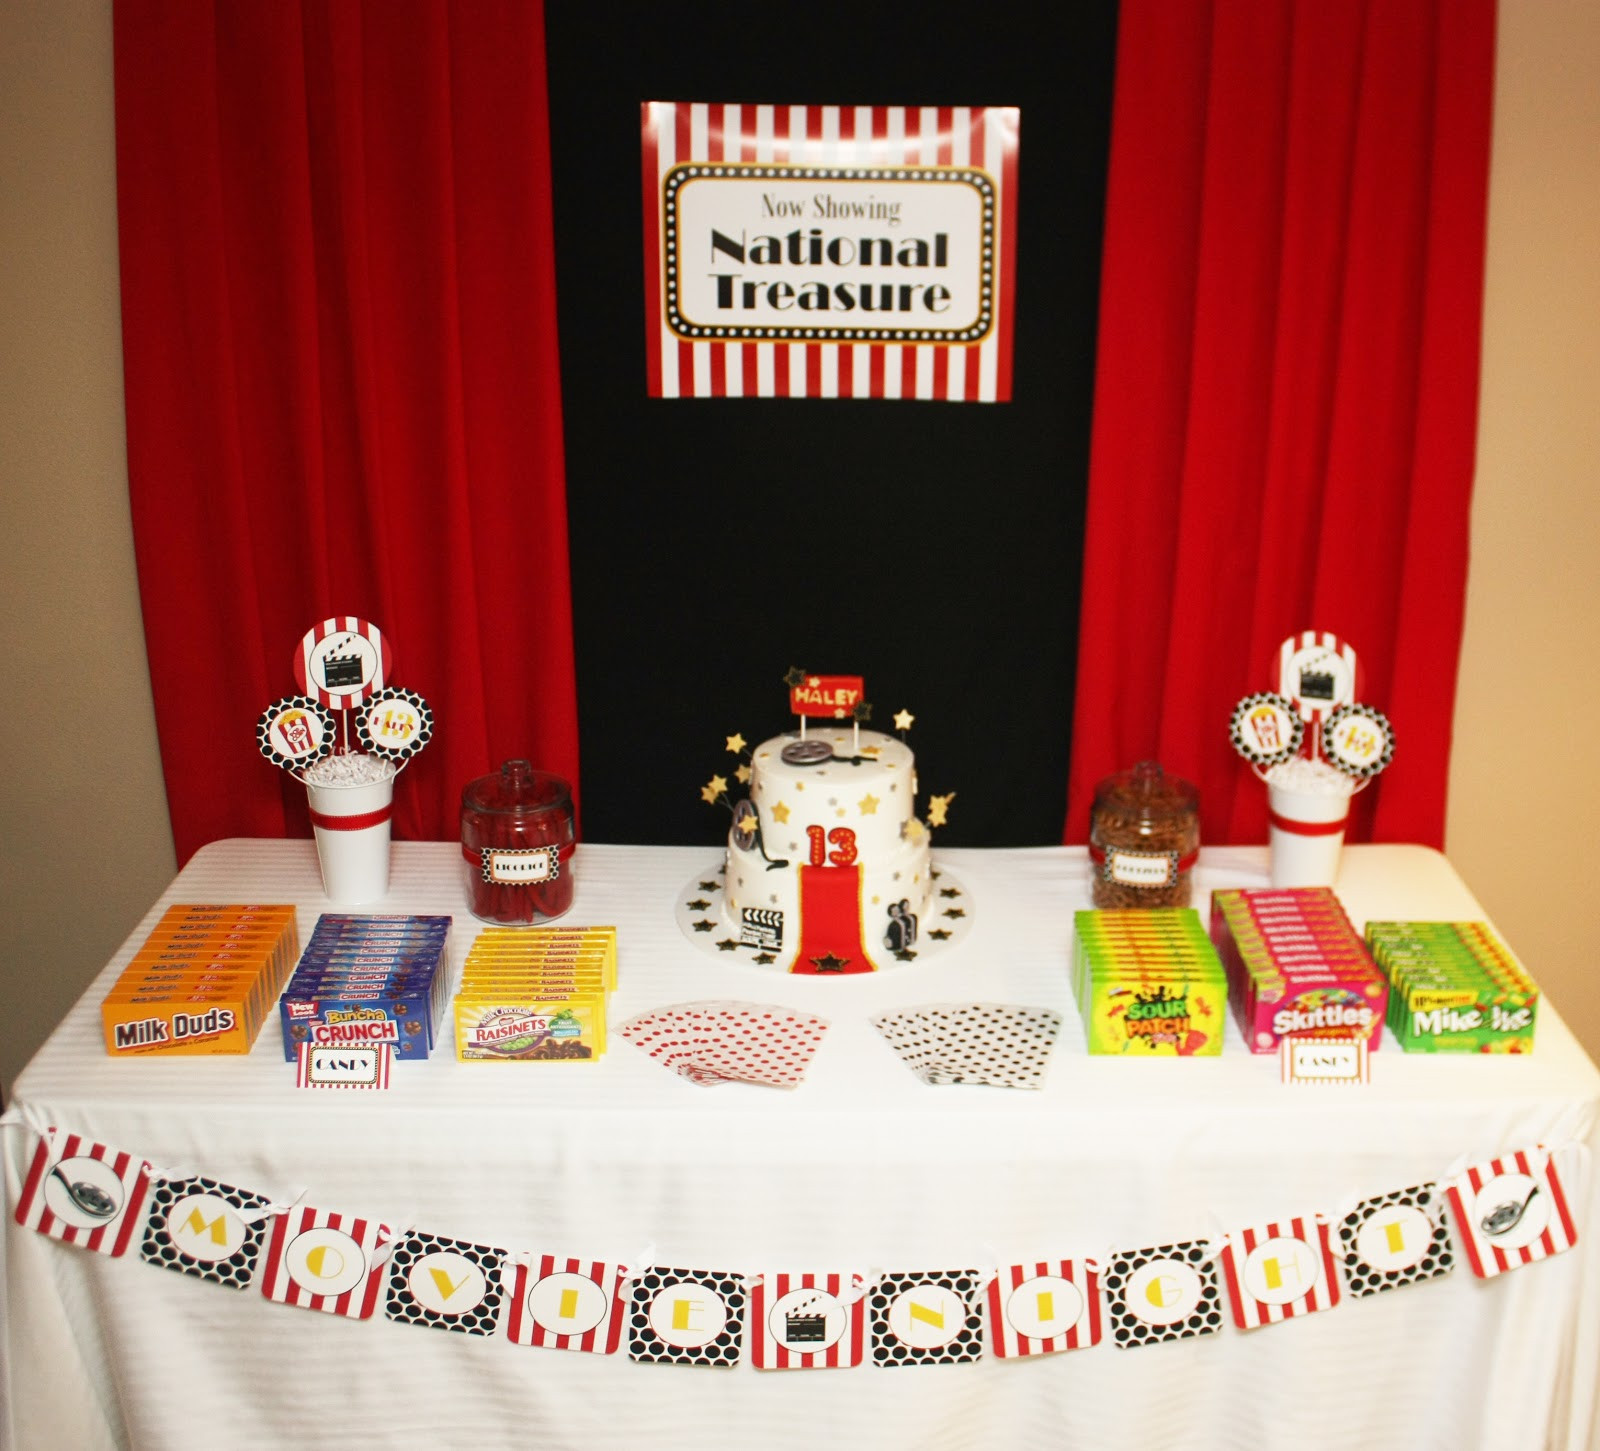 Best ideas about 13th Birthday Decorations . Save or Pin 5M Creations Movie Night 13th Birthday Party Now.